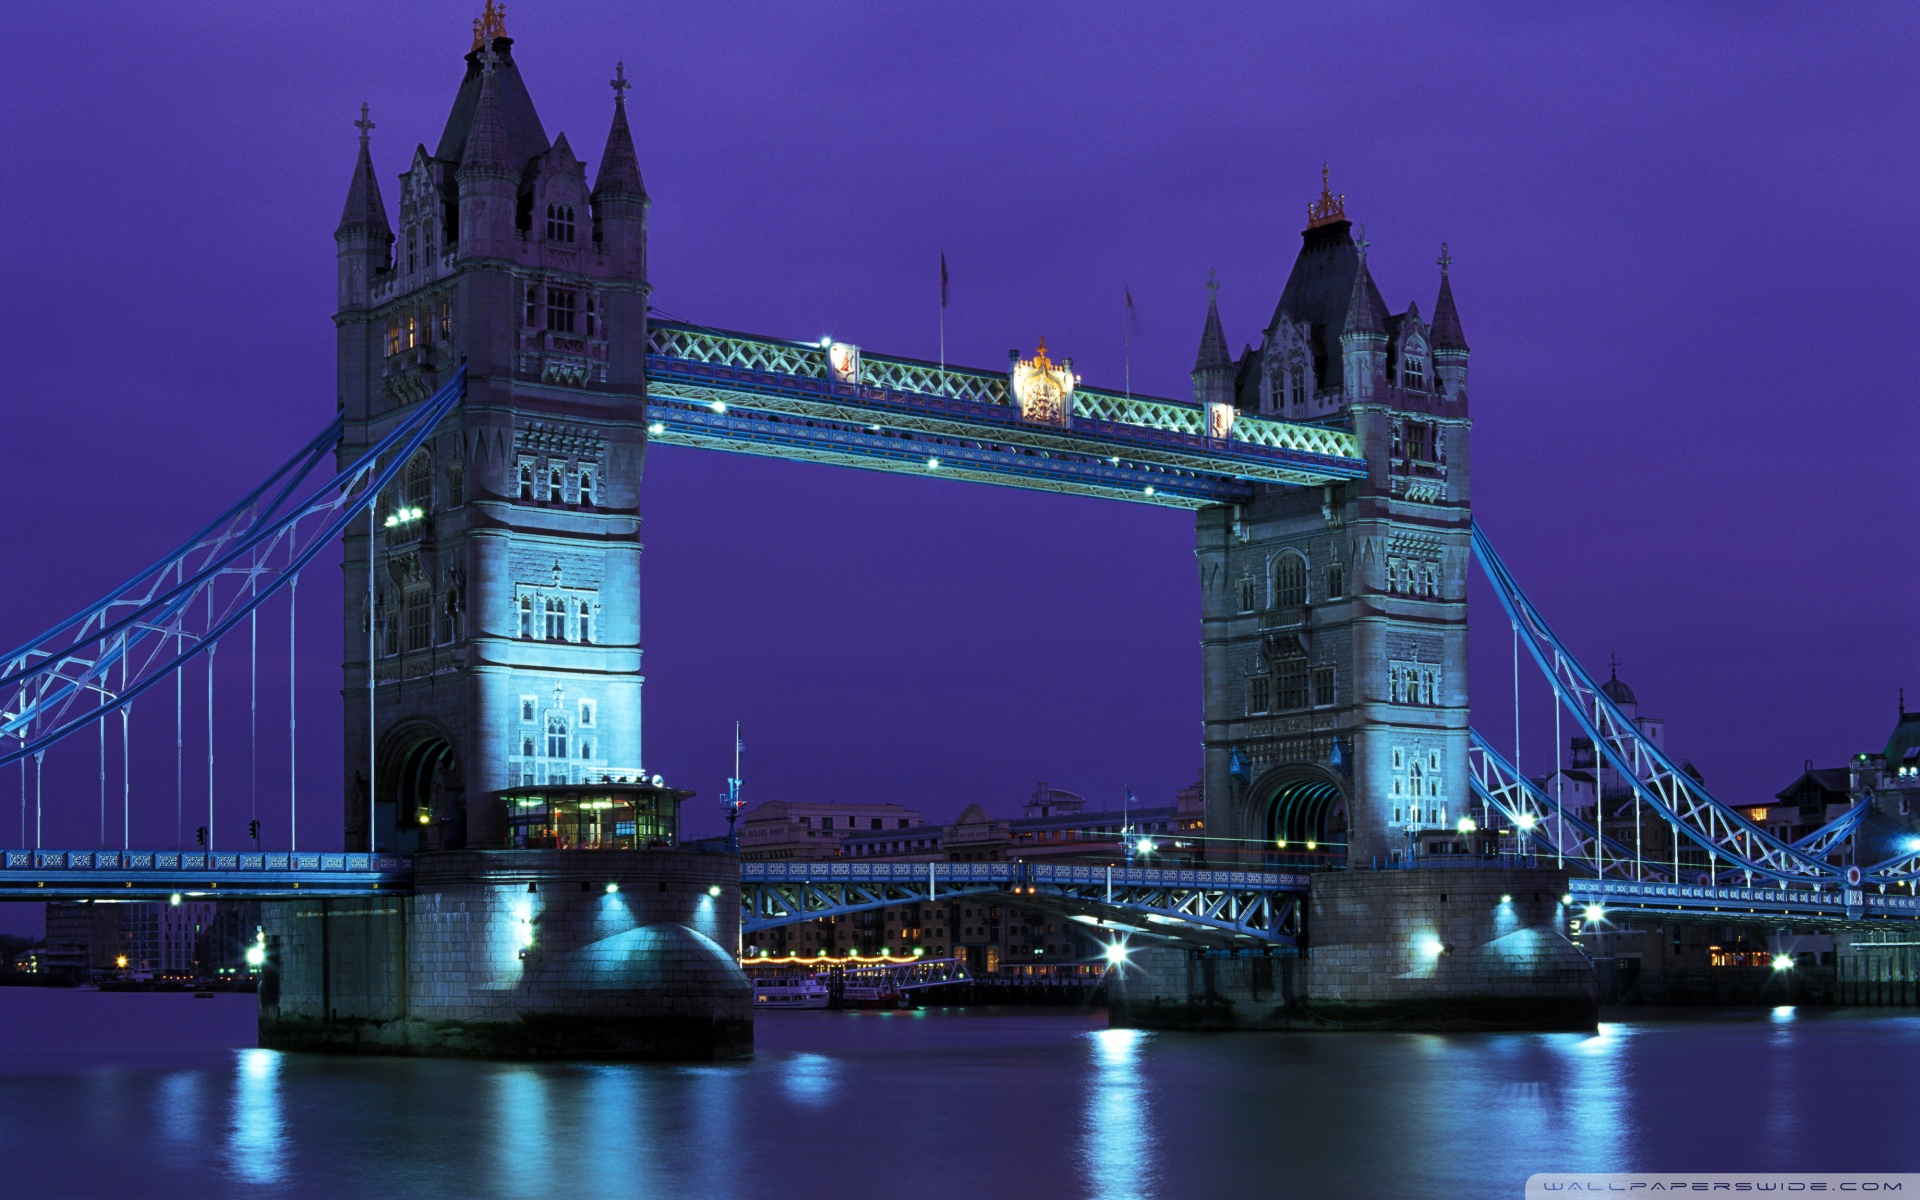 london_tower_bridge_2-wallpaper-1920x1200.jpg